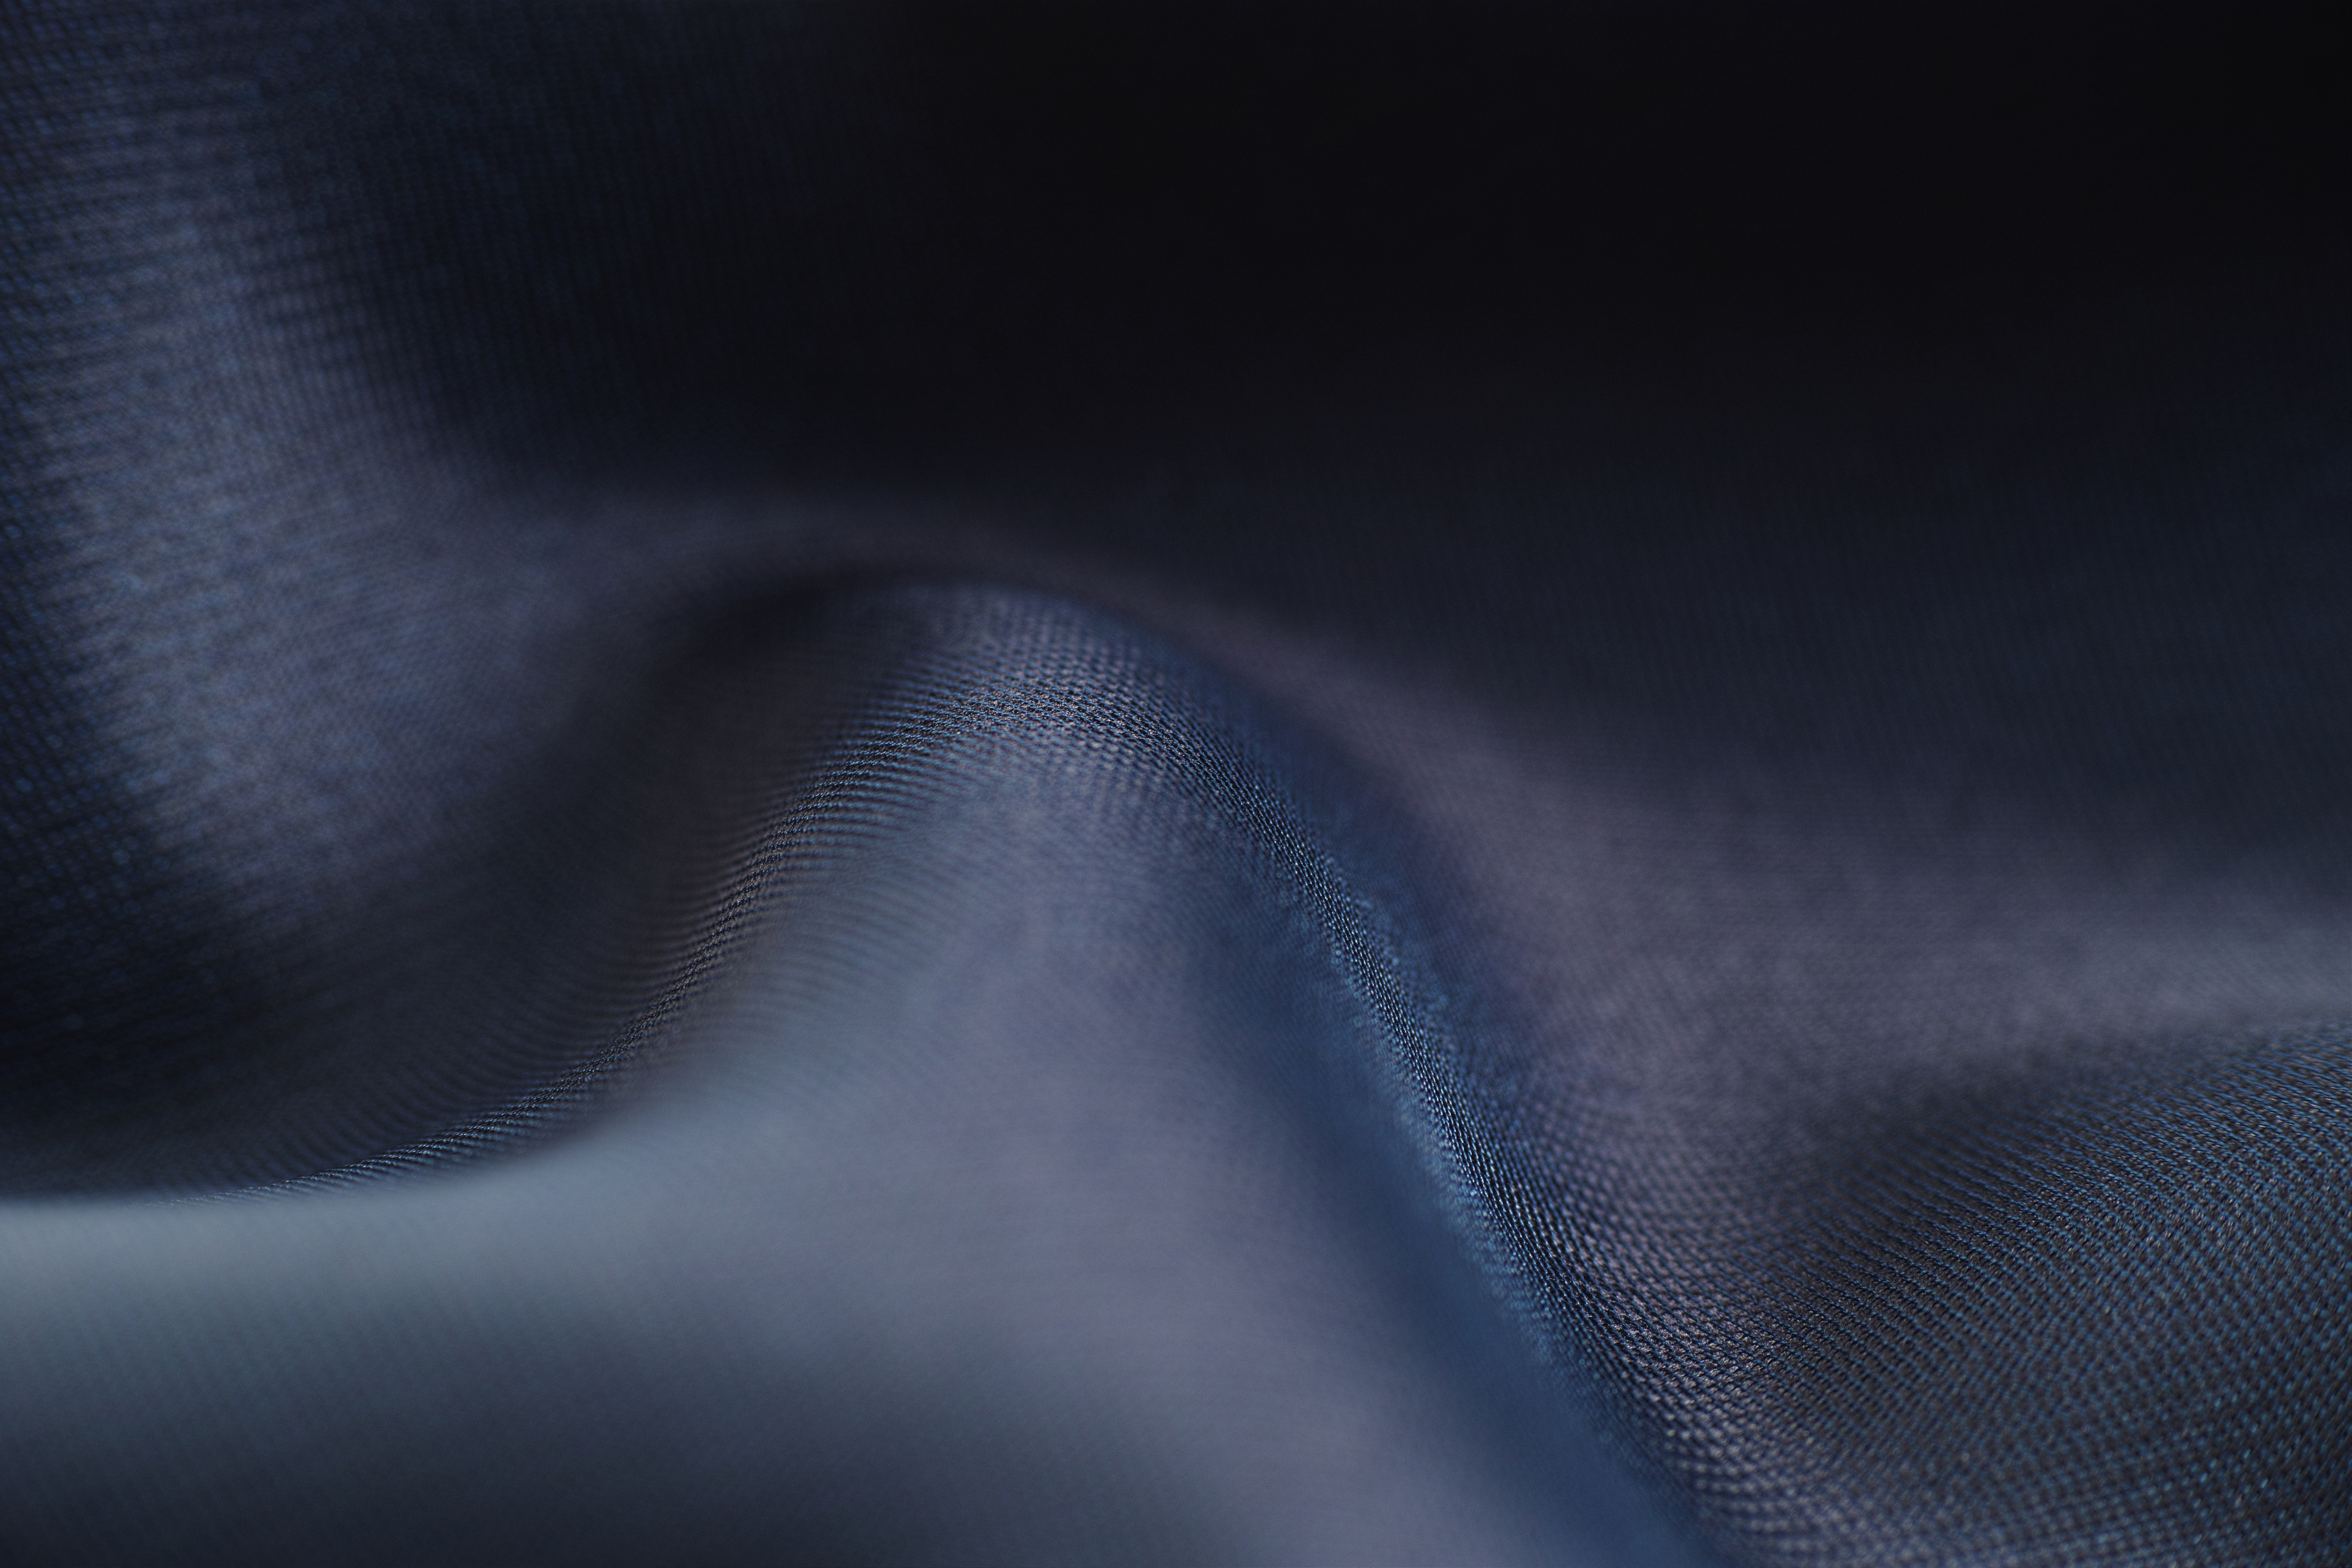 Black Textile in Focus Photography